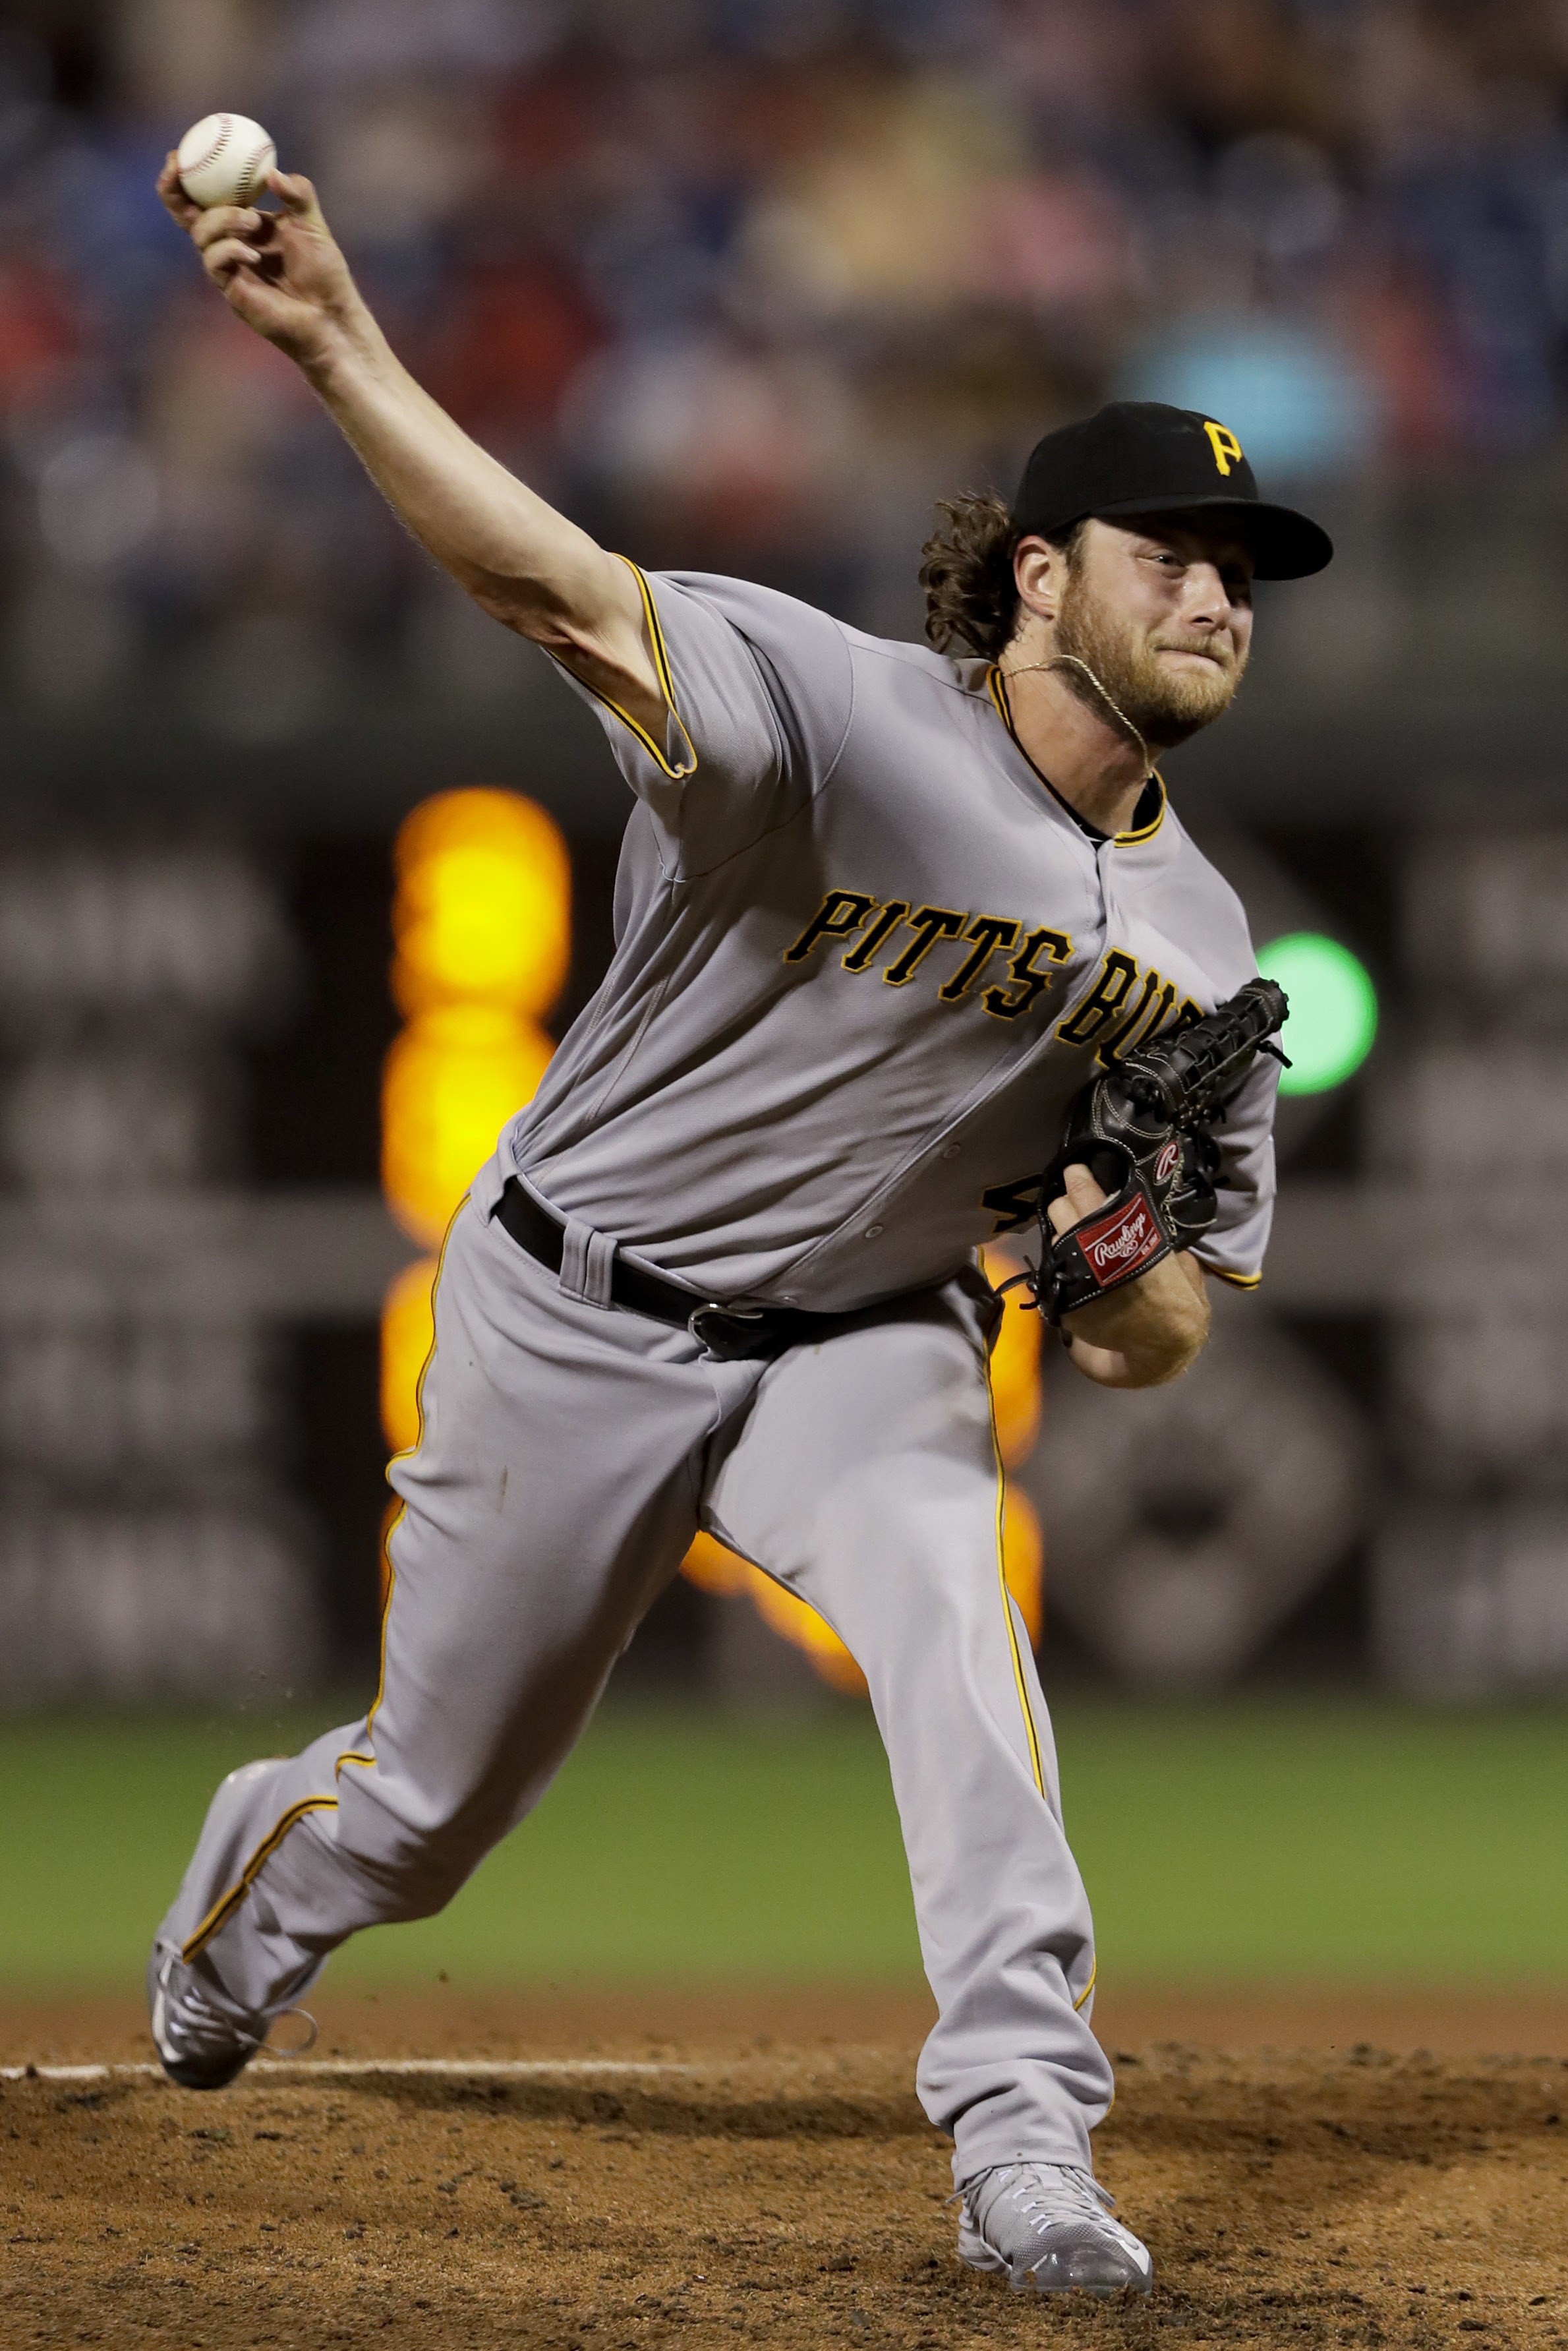 Pittsburgh Pirates starting pitcher Gerrit Cole pitches during the second inning of a baseball game against the Philadelphia Phillies, Monday, Sept. 12, 2016, in Philadelphia. (AP Photo/Matt Slocum)